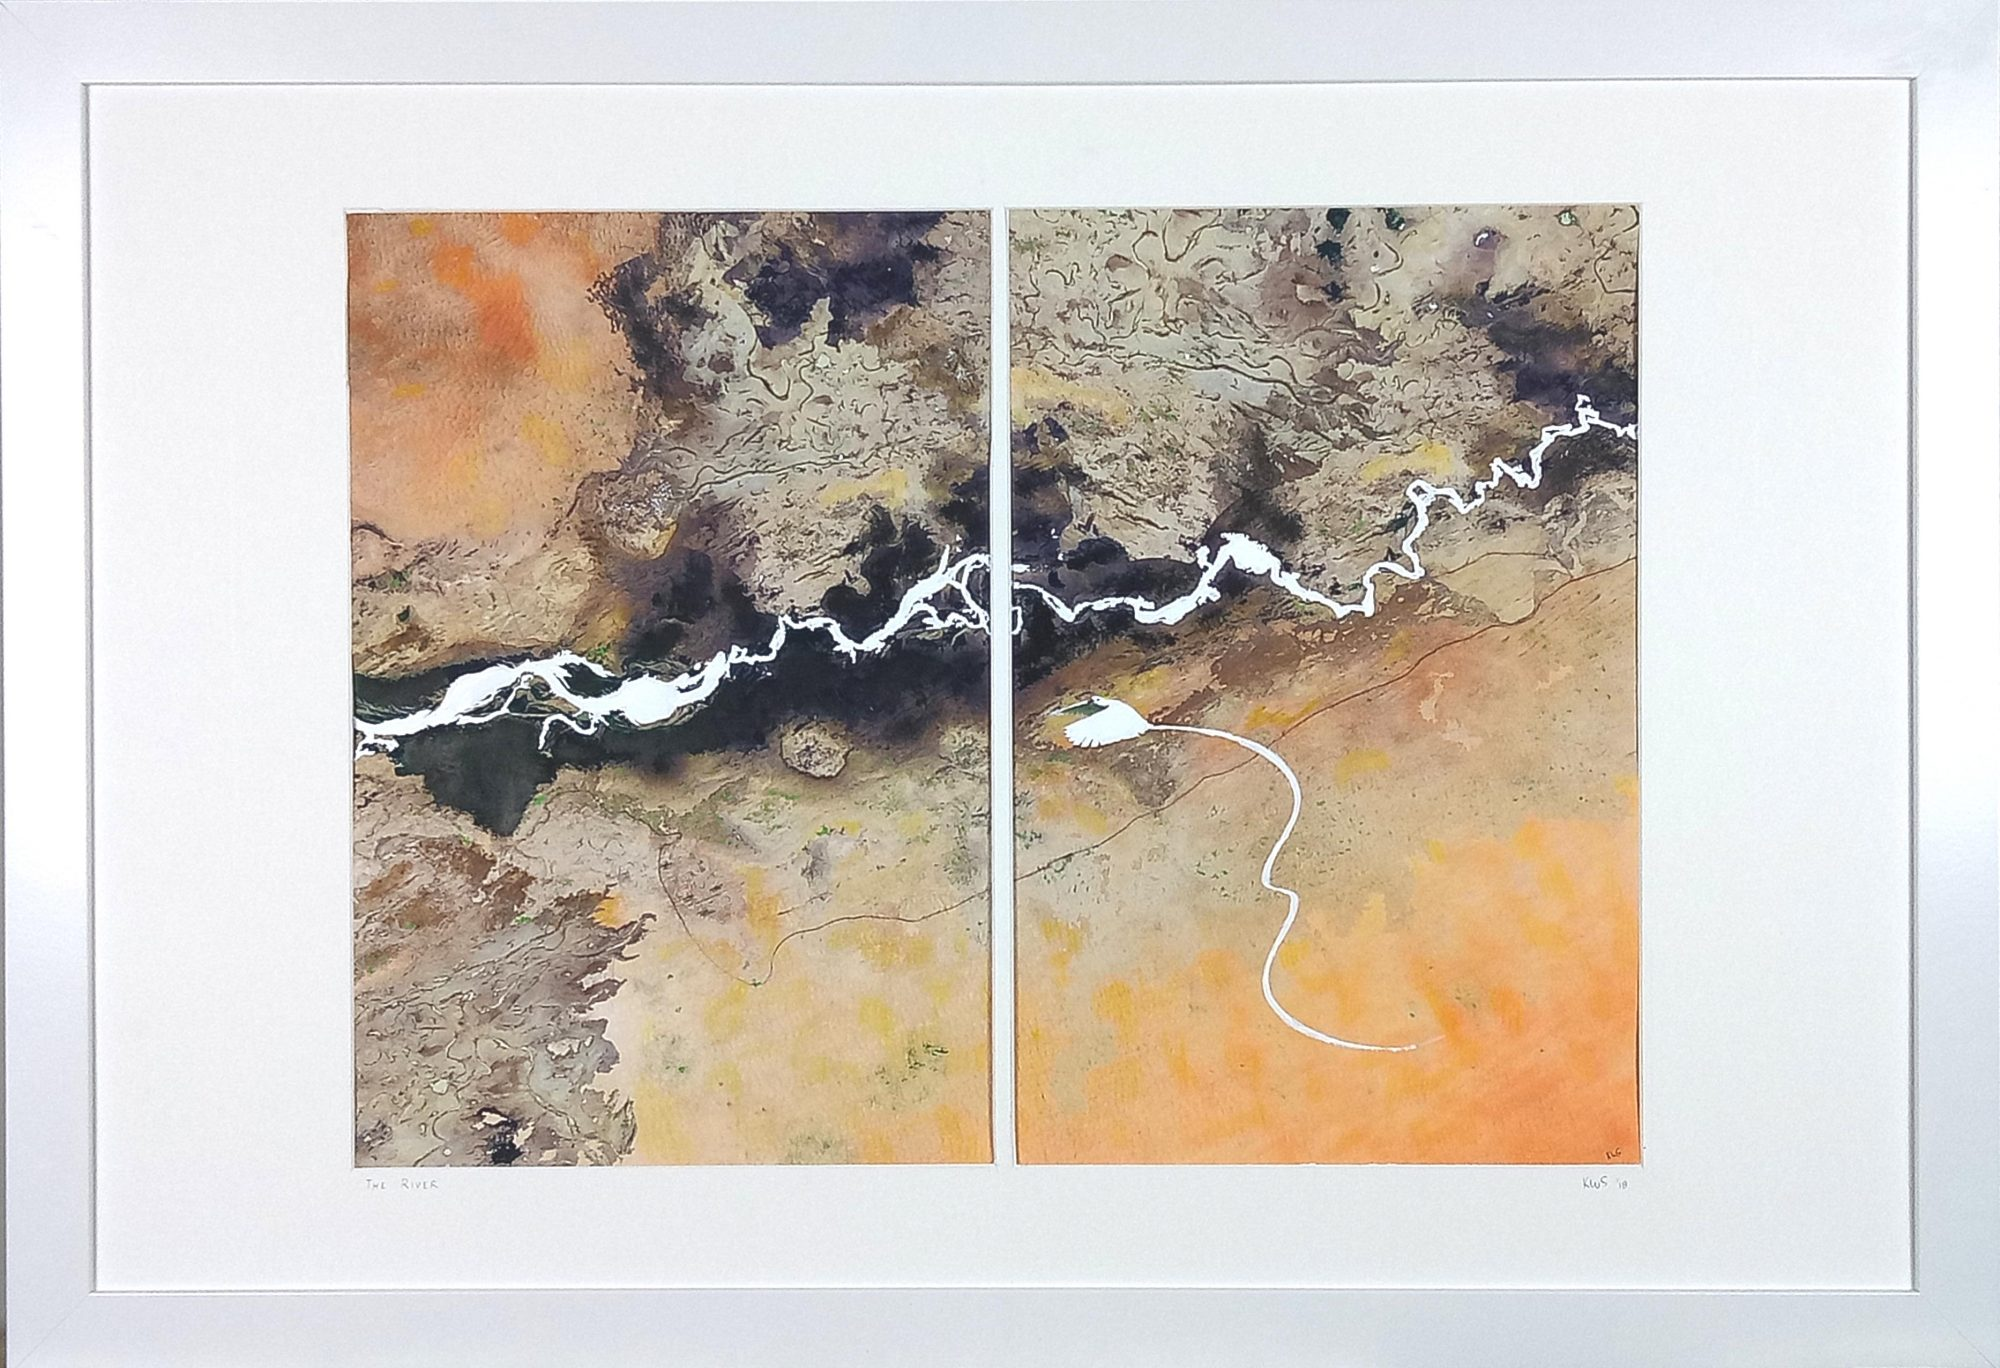 The River with frame